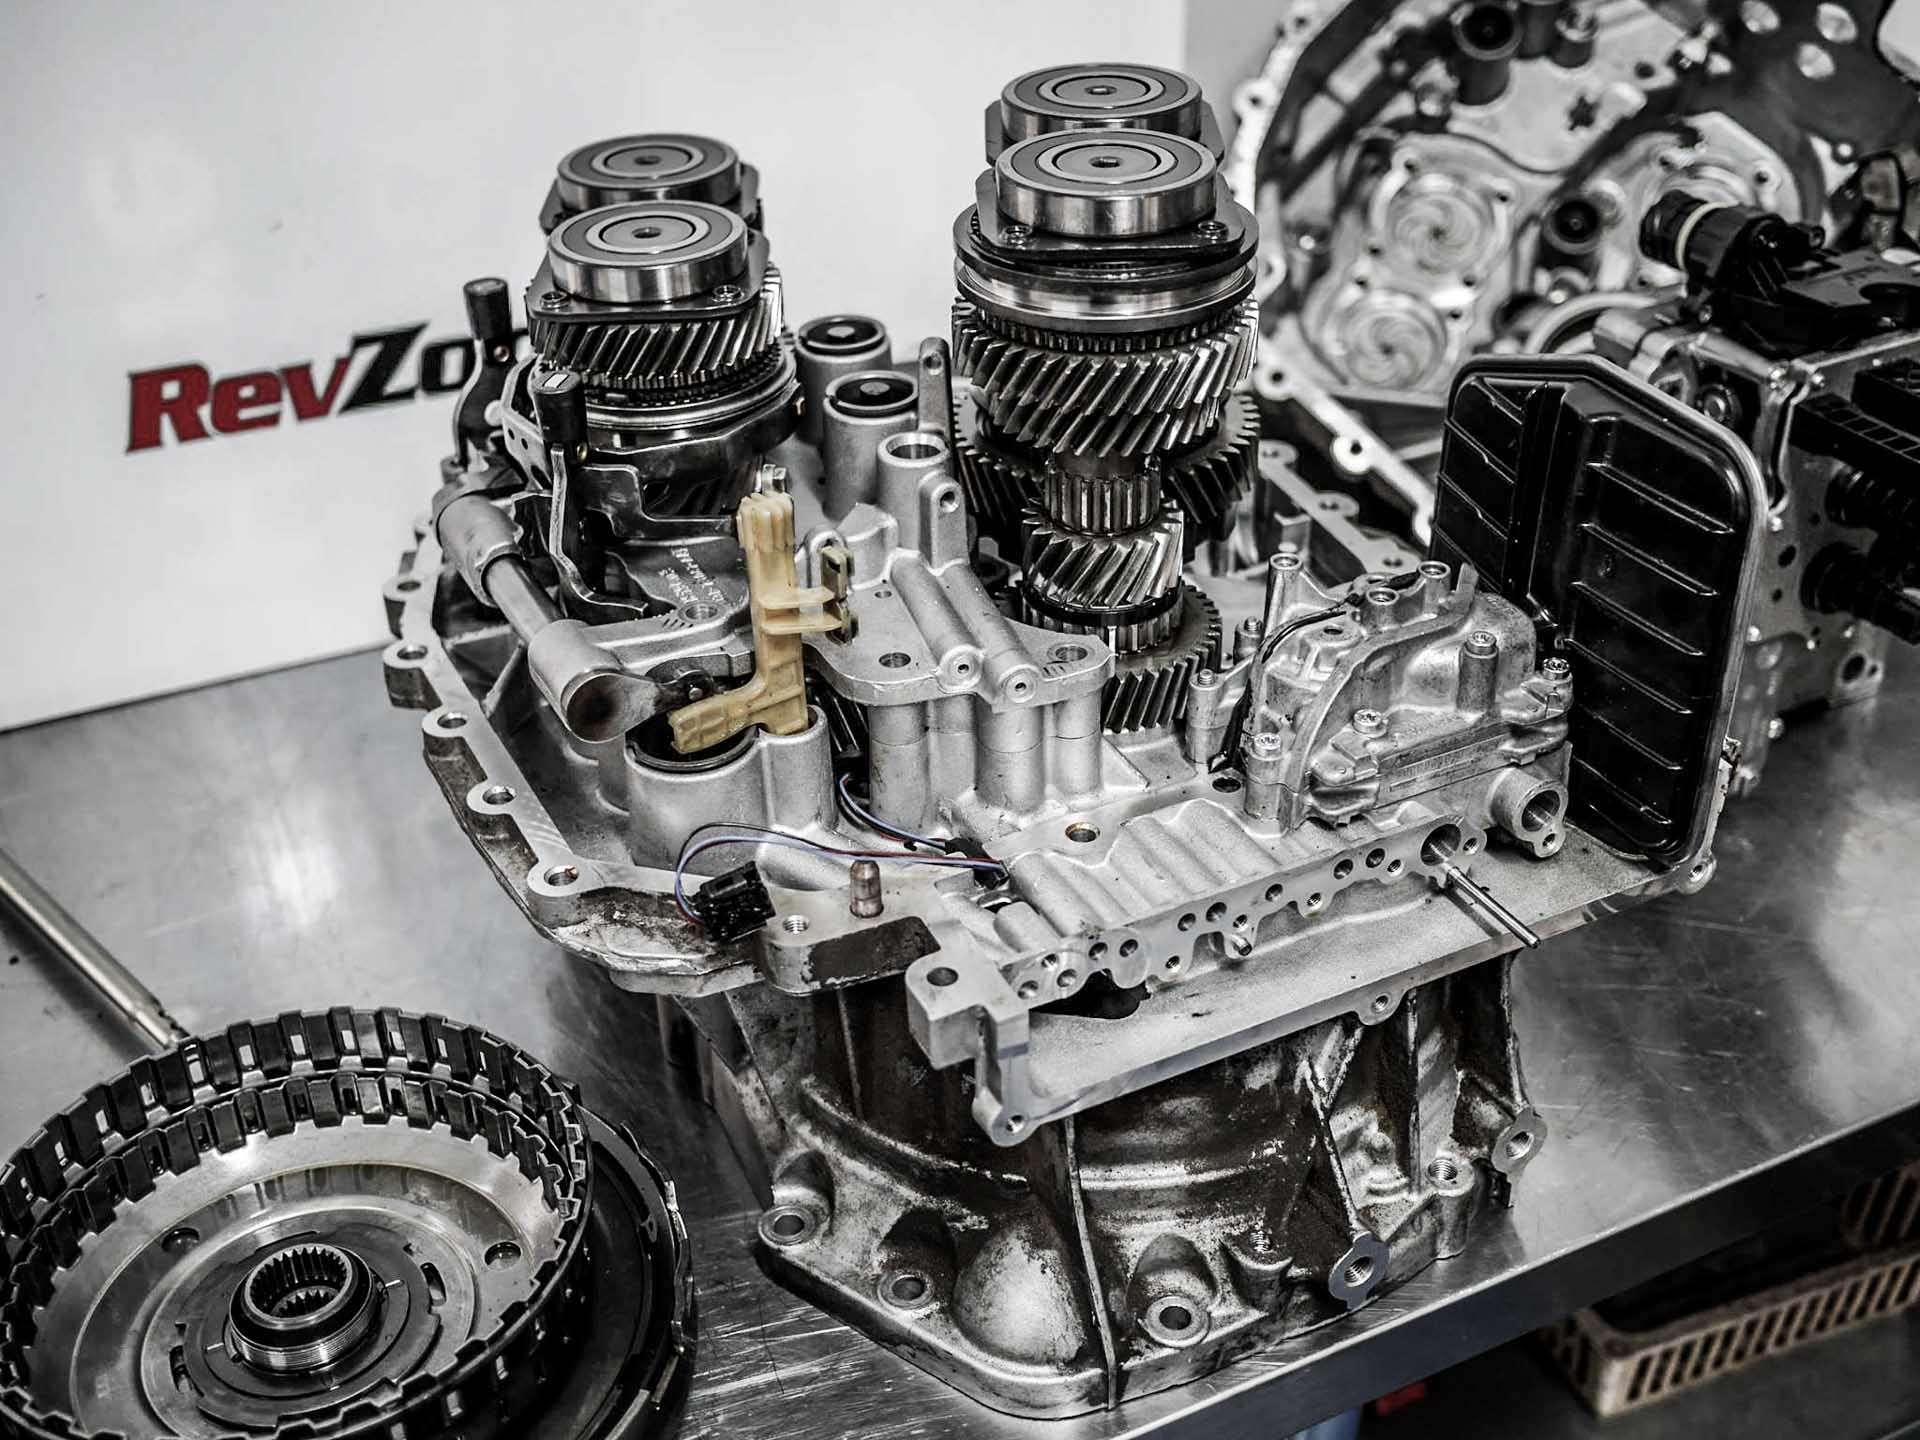 EVO X / Ralliart SST service & repair 2 EVO X / Ralliart SST service & repair As many Ralliart Lancer and EVO X owners have already experienced, the SST has had an enormous amount of issues as they were Getrag's first attempt at a twin clutch transmission unit.